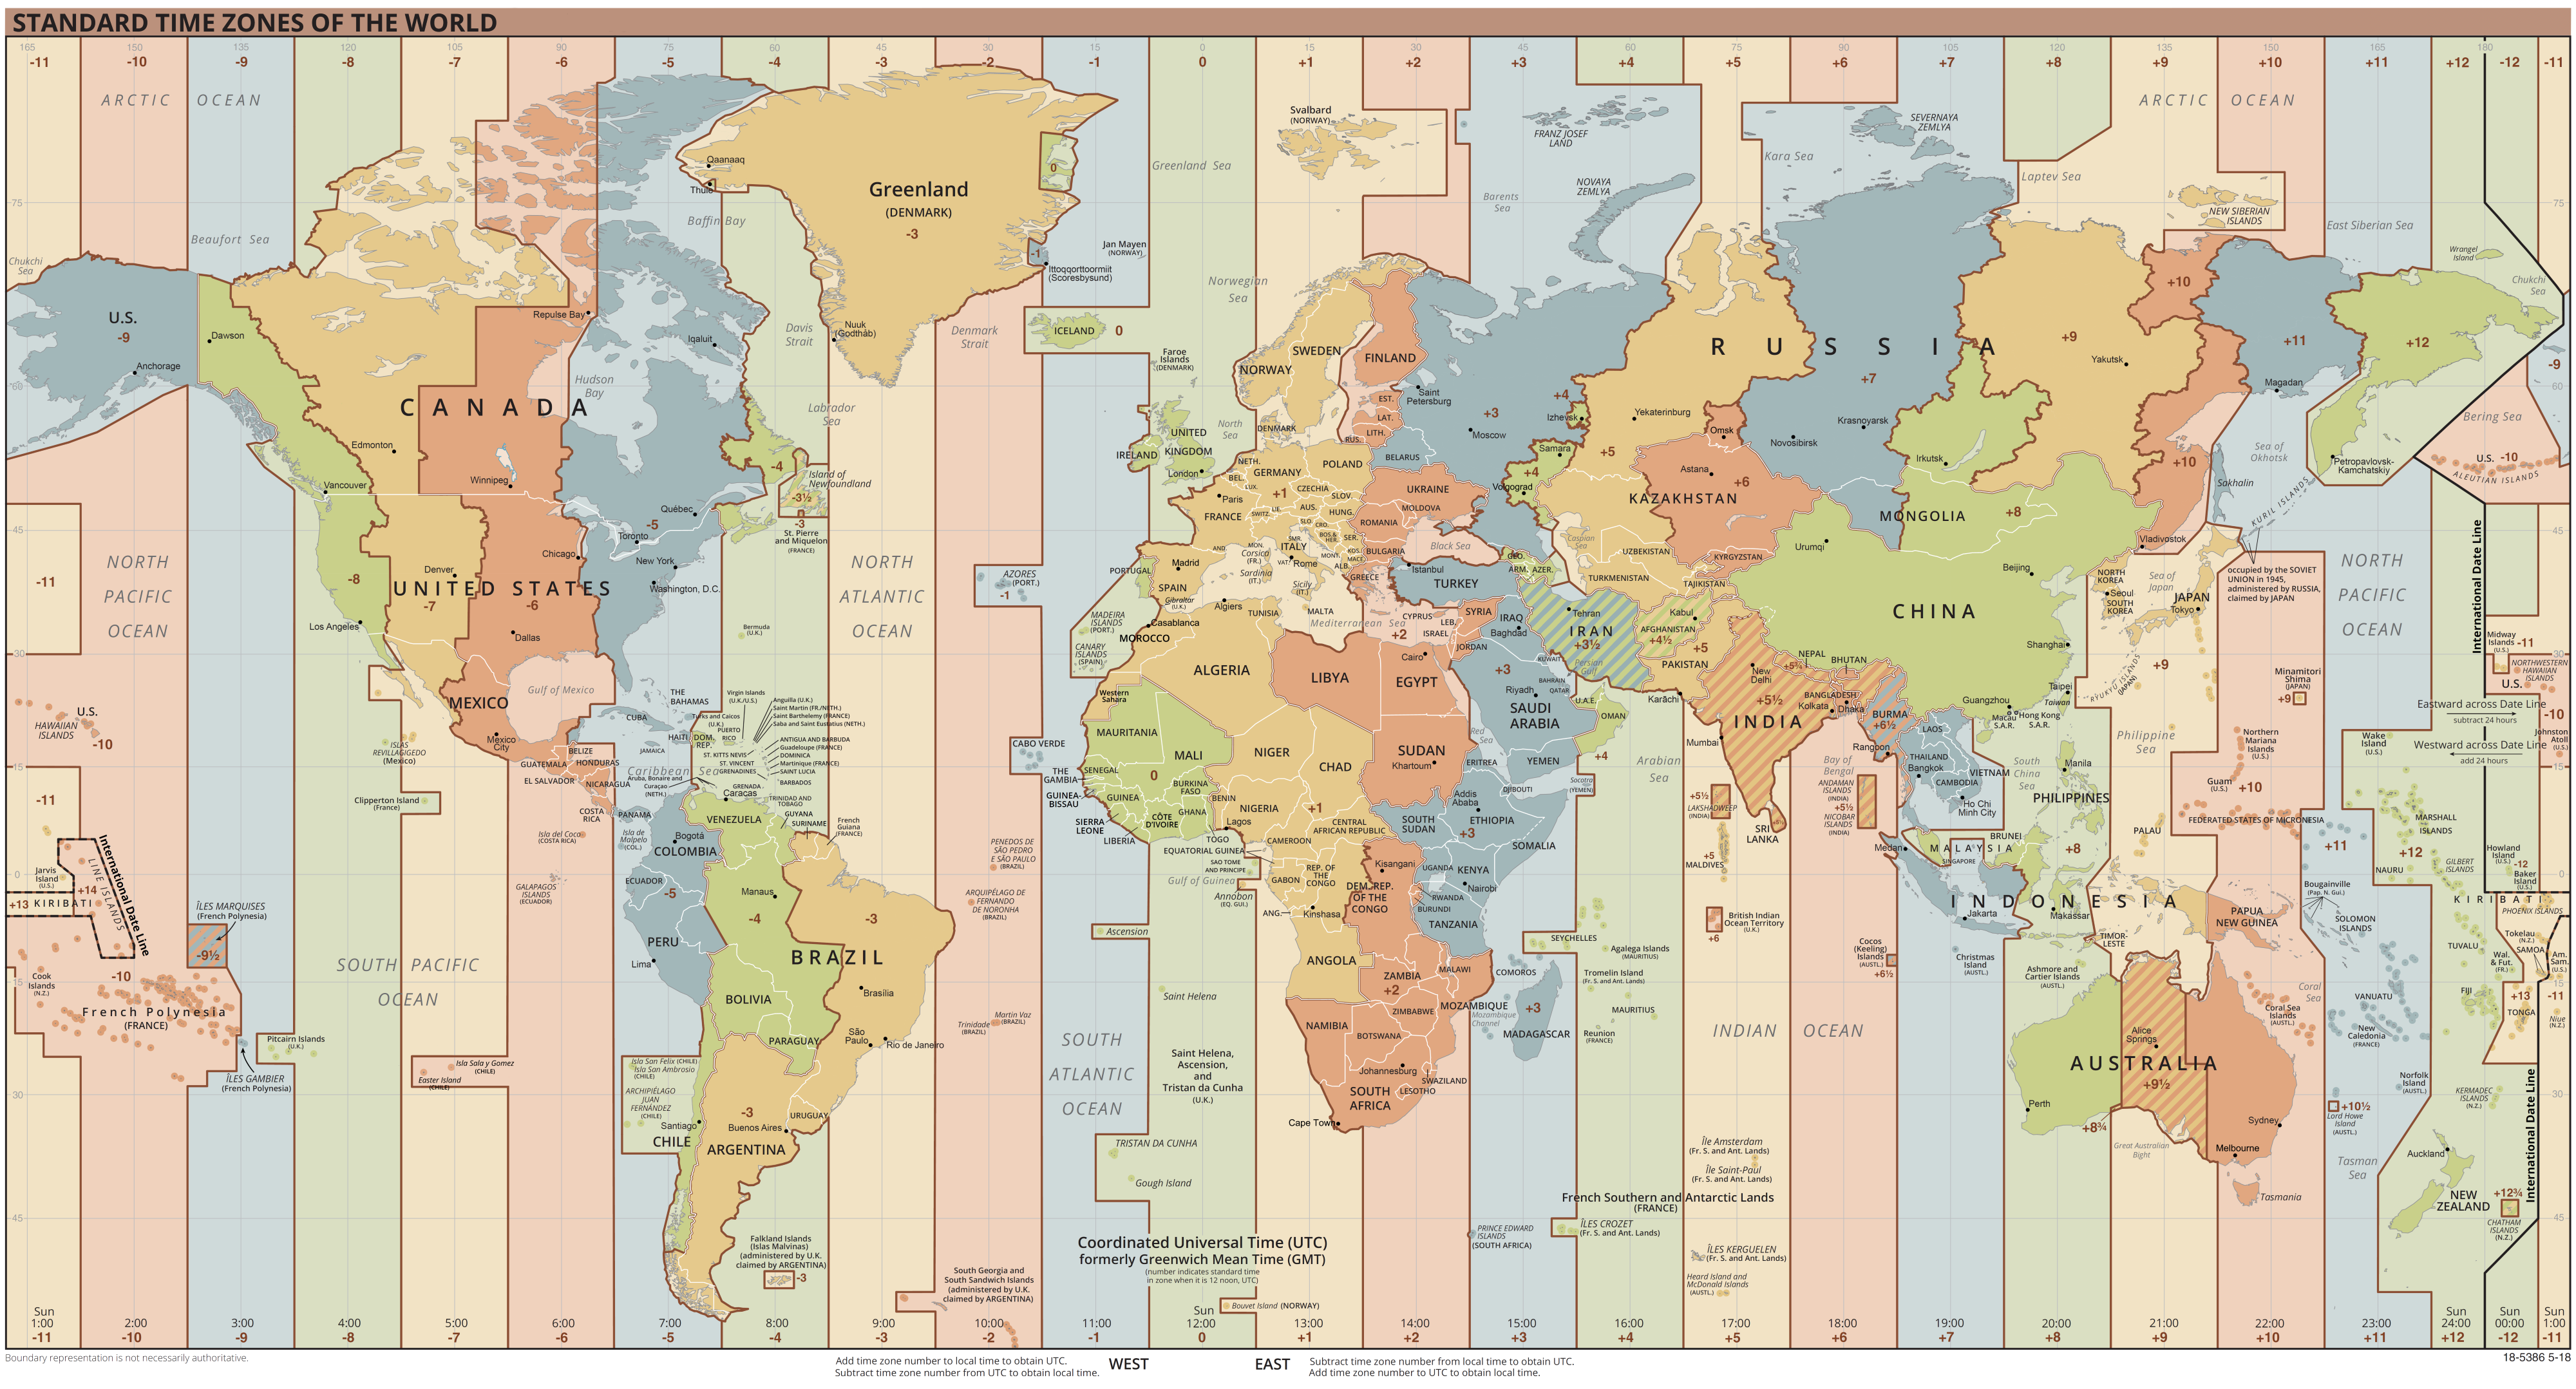 World Time Zones